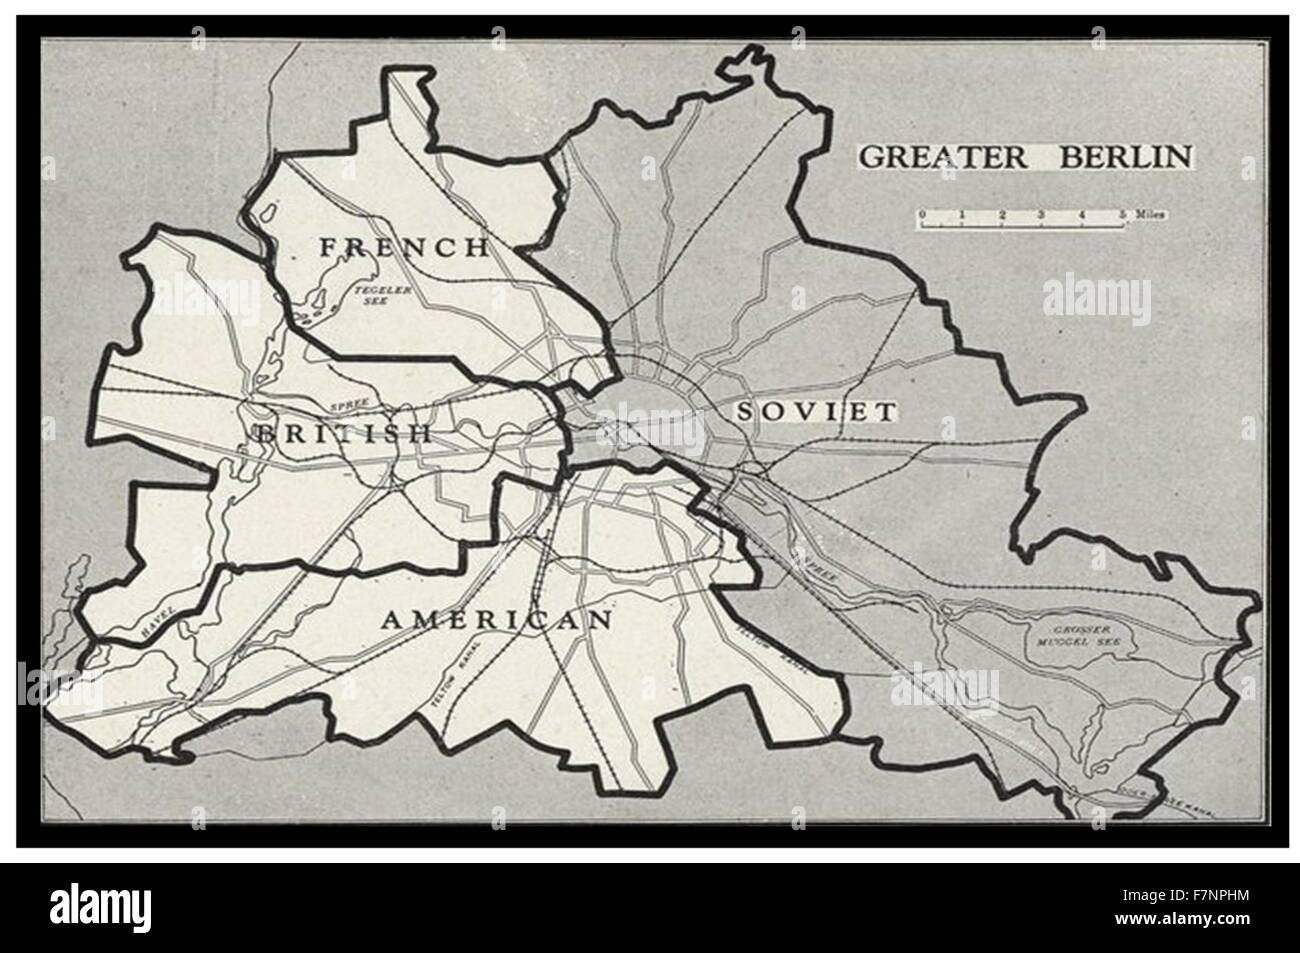 Berlin Blockade Map 1948. he Berlin Blockade (1 April 1948 – 12 May 1949) was one of the first major international Stock Photo